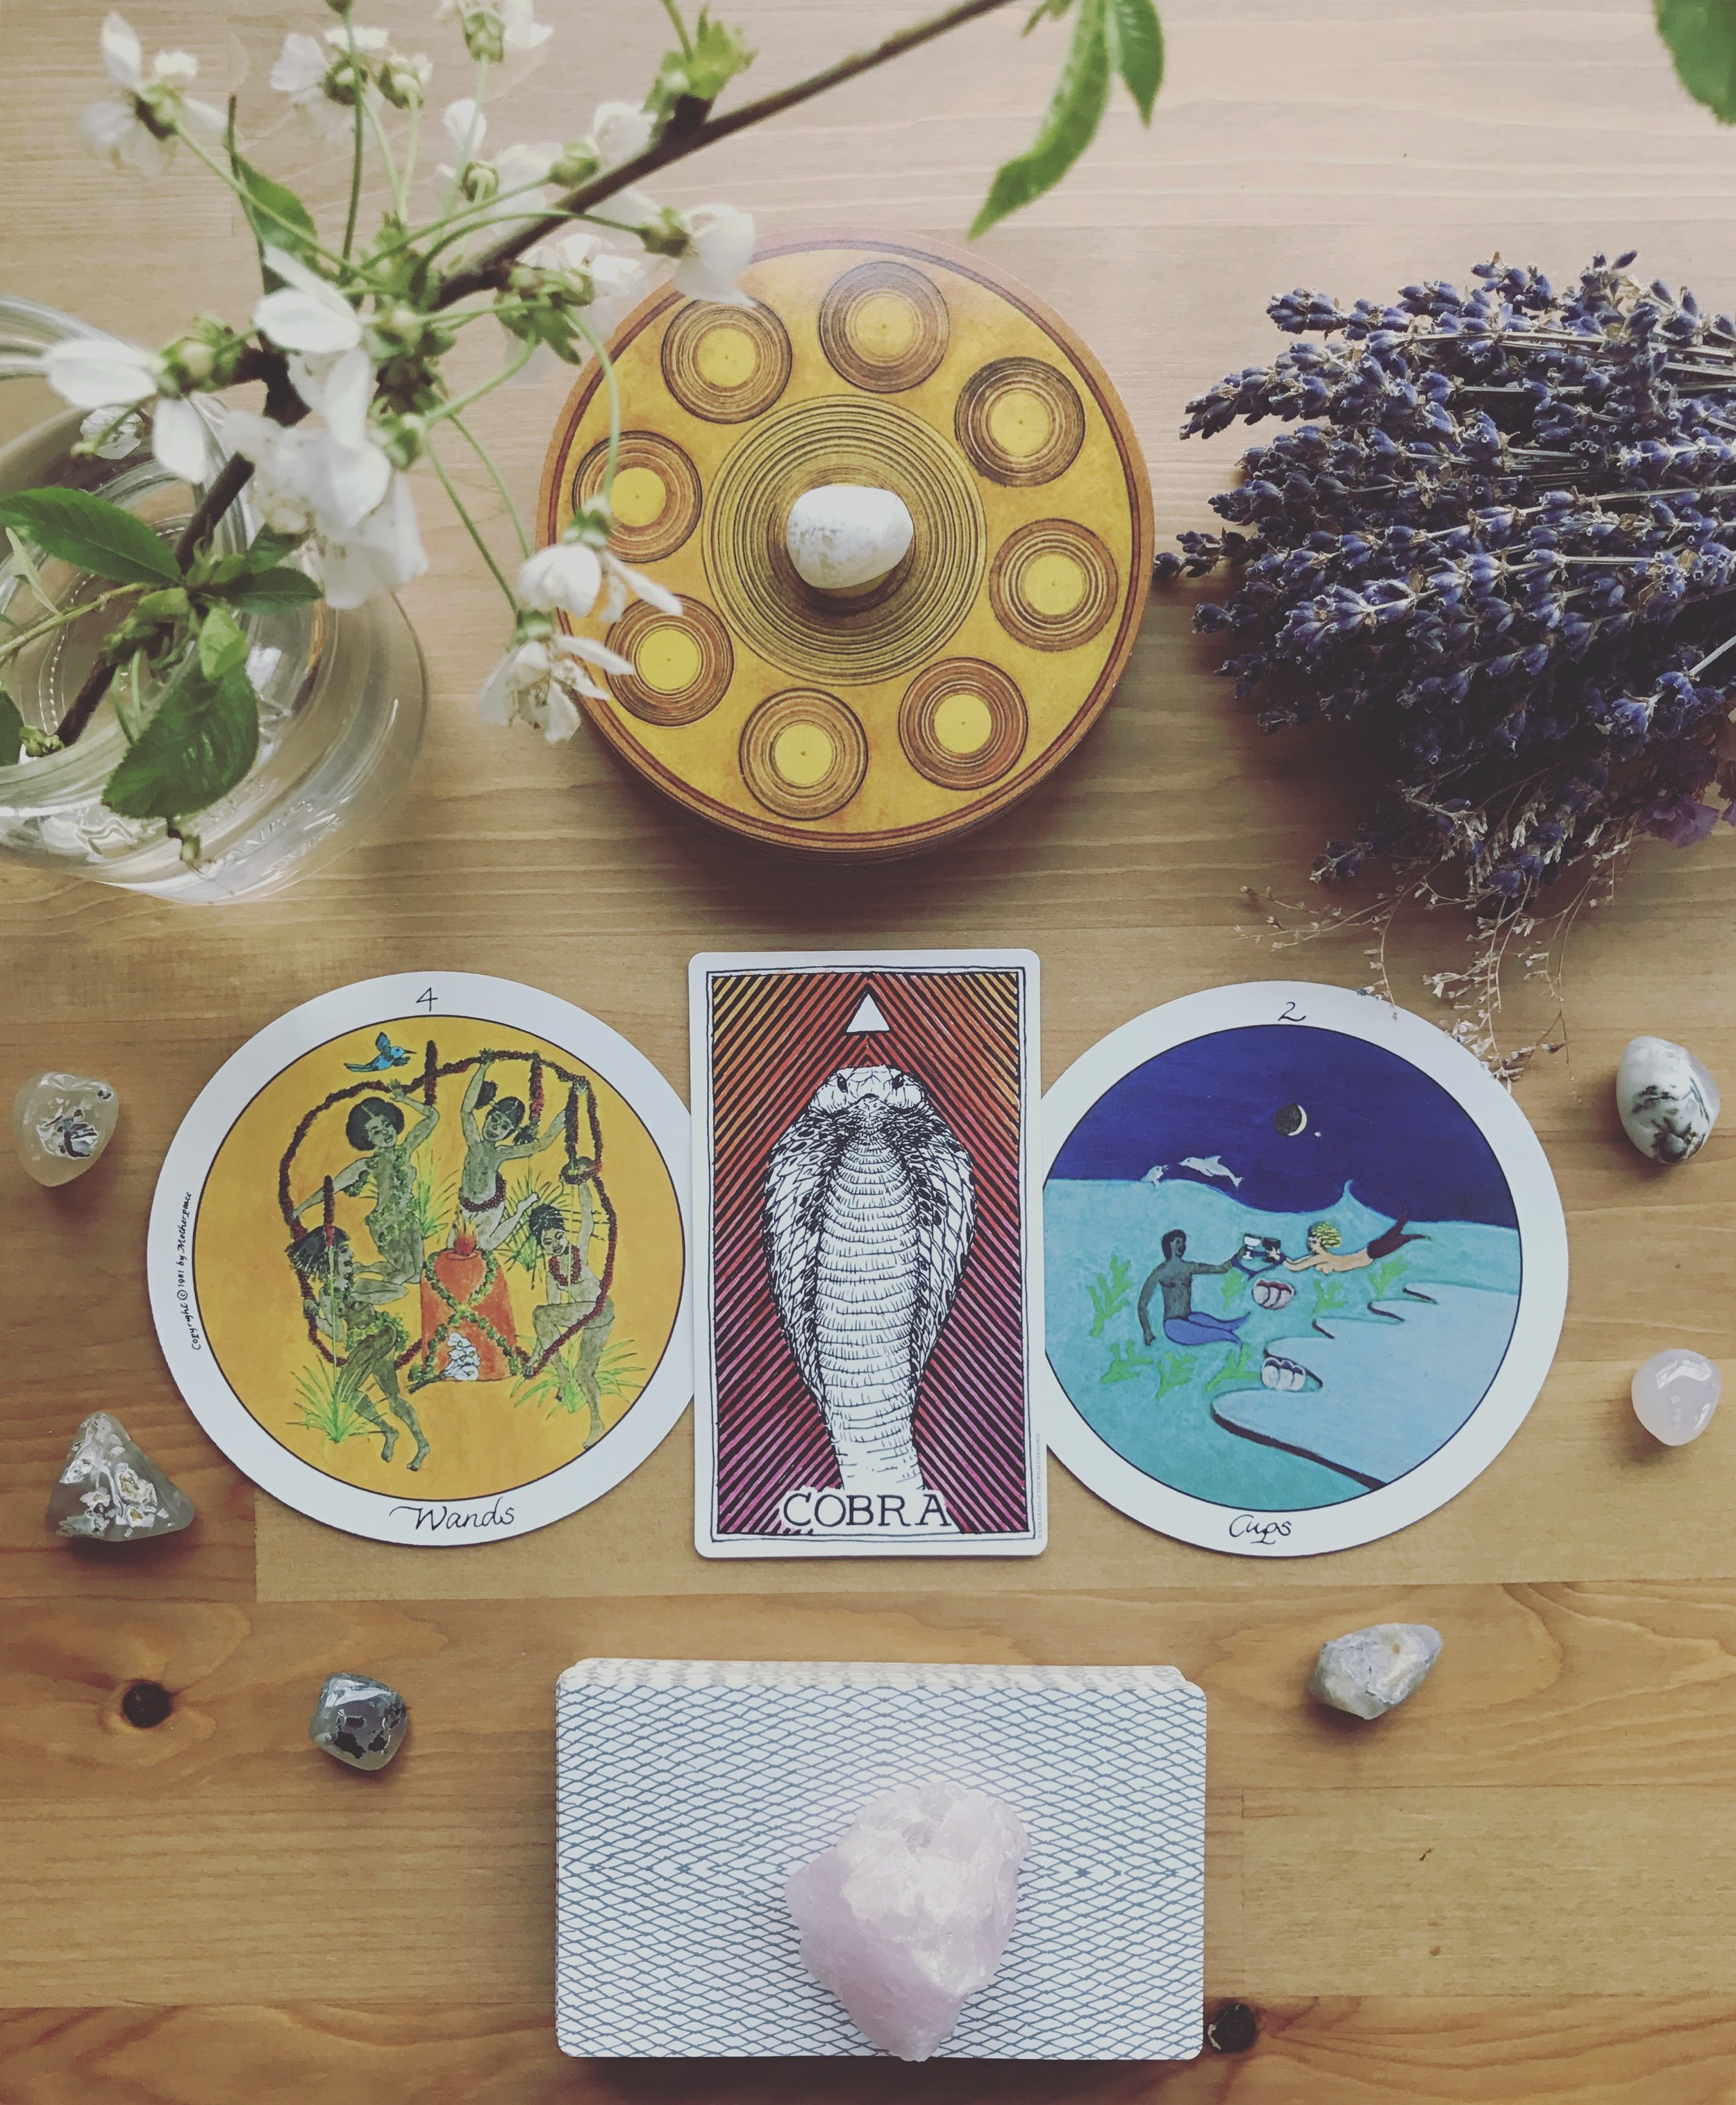 Last night, in a sort of lucid dream, I think I was initiated and united with some seriously powerful energy. After awaking to a bloody mess threatening to overflow onto my sheets at 330 in the morning, I couldn't fall back asleep. In these moments, I turn to meditation to help me back into a resting, calm mindset. As I was grounding and reaching out to the universe, my mind shifted simultaneously to a powerful visualization that came to me from my reiki healer in an especially nurturing session. As I reached out to connect with the energy of the universe, it began flowing back to me and into my heart, where a seed began to sprout. The seed birthed a green stem from my chest that grew into a beautiful, budding pink lily. As it bloomed it turned it's petals toward me, cocooning me in a shelter of divine and self love. And then I fell asleep… kind of.  I was in a sort of lucid dream, I assume (I've never been able to do this consciously). It was absolutely clear that I was vibrating with the energy of the divine feminine. I felt it in every cell of my body. And then ideas, truths, feelings of sorts began scrolling through my mind so fast I could barely capture the scrolling into words or concrete memories. It felt like a download of sorts, as my reiki healer would call it. And then I settled into a dreamless sleep that lasted well into the morning.  This morning's draw has me stunned, humbled, and struggling to accept the gift of what must have happened last night.  The four of wands is a card of initiation and celebration. It is a turning point, one that requires an advancement in responsibility but also marks significant growth. The two of cups is a union of equals. It can happen between two people, between two parts of ourselves, or even a person with magical energy or divinity. The Cobra represents our inner teacher, wise and connected to the divine.  Could it possibly be true? Was what happened last night an initiation into a deeper level of wisdom, connection, a